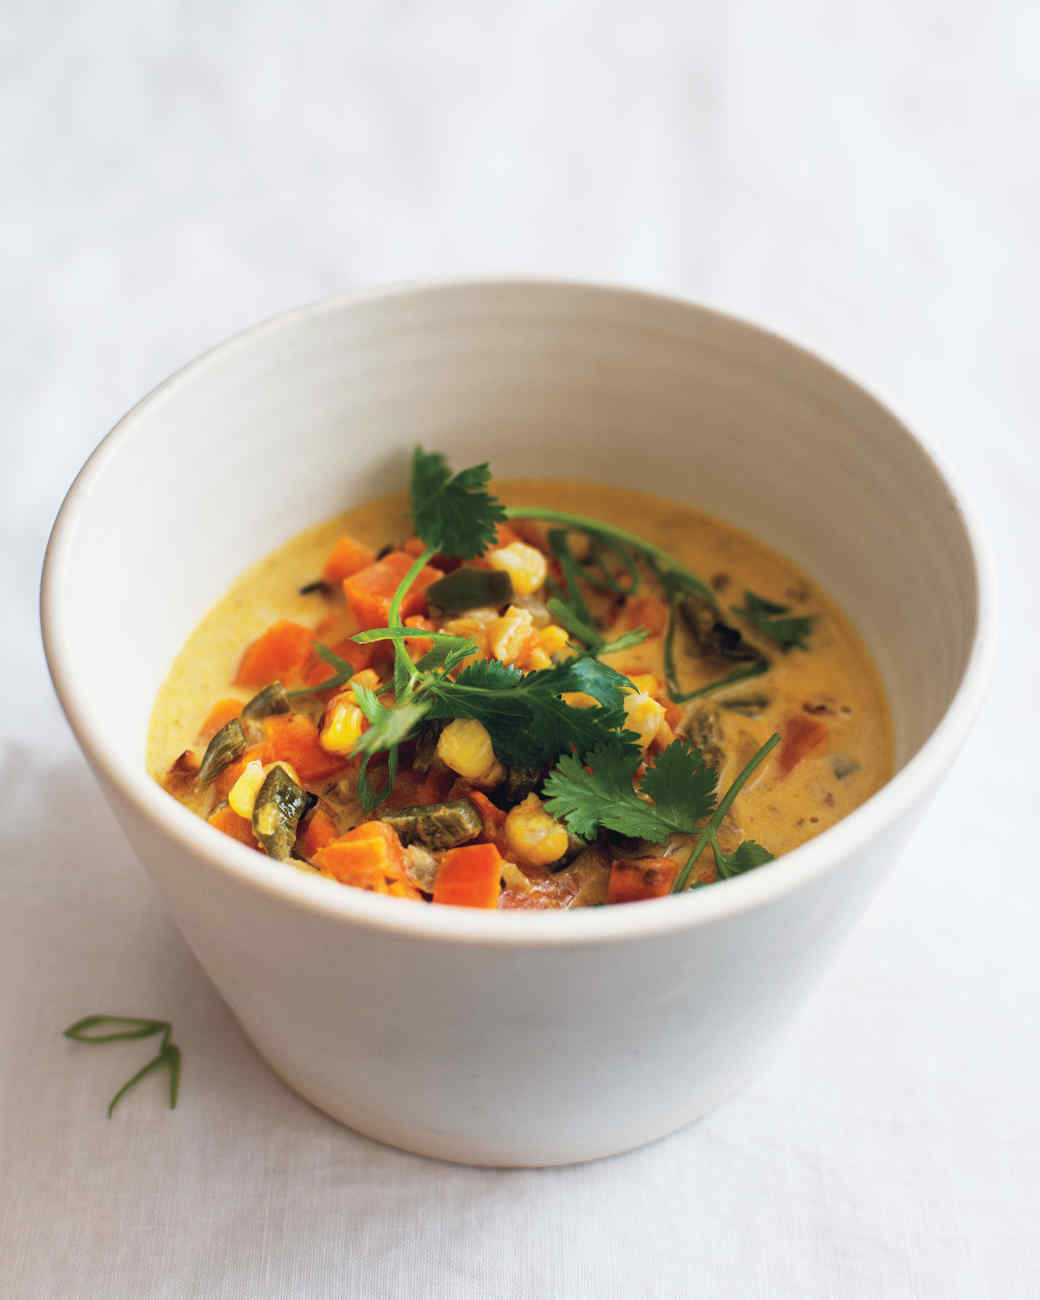 Dr. Weil's Sweet Potato-Poblano Soup